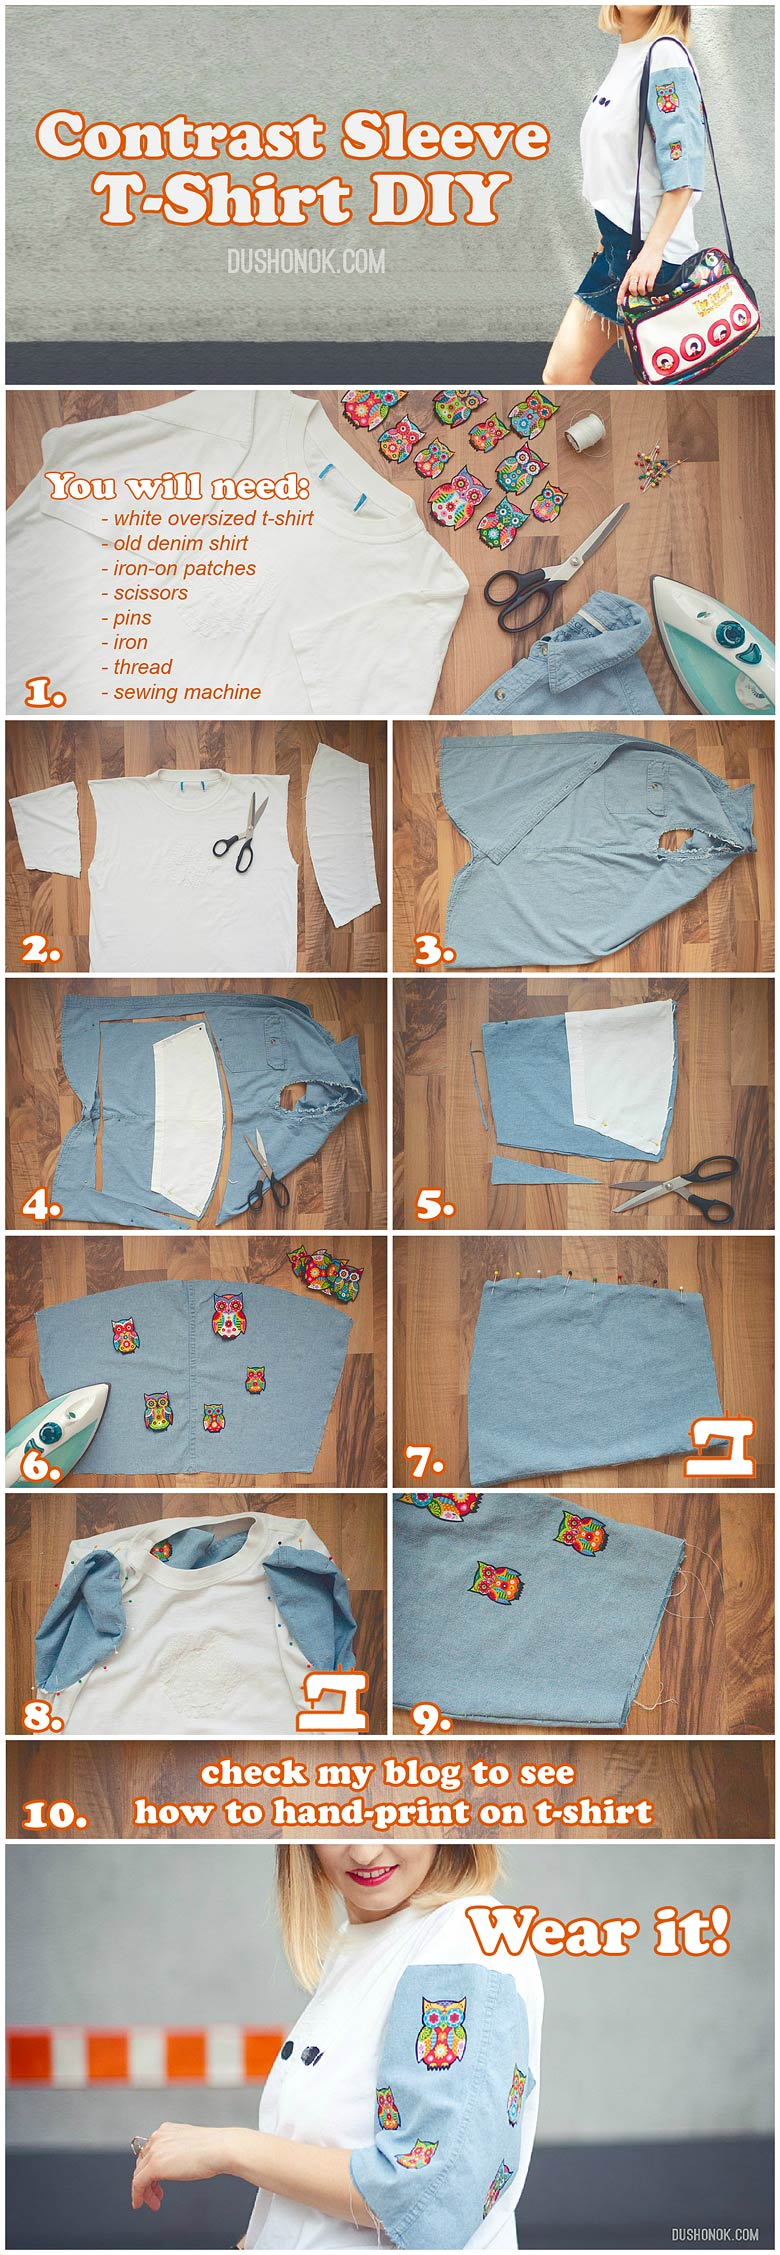 Contrast Sleeve T-Shirt DIY Steps